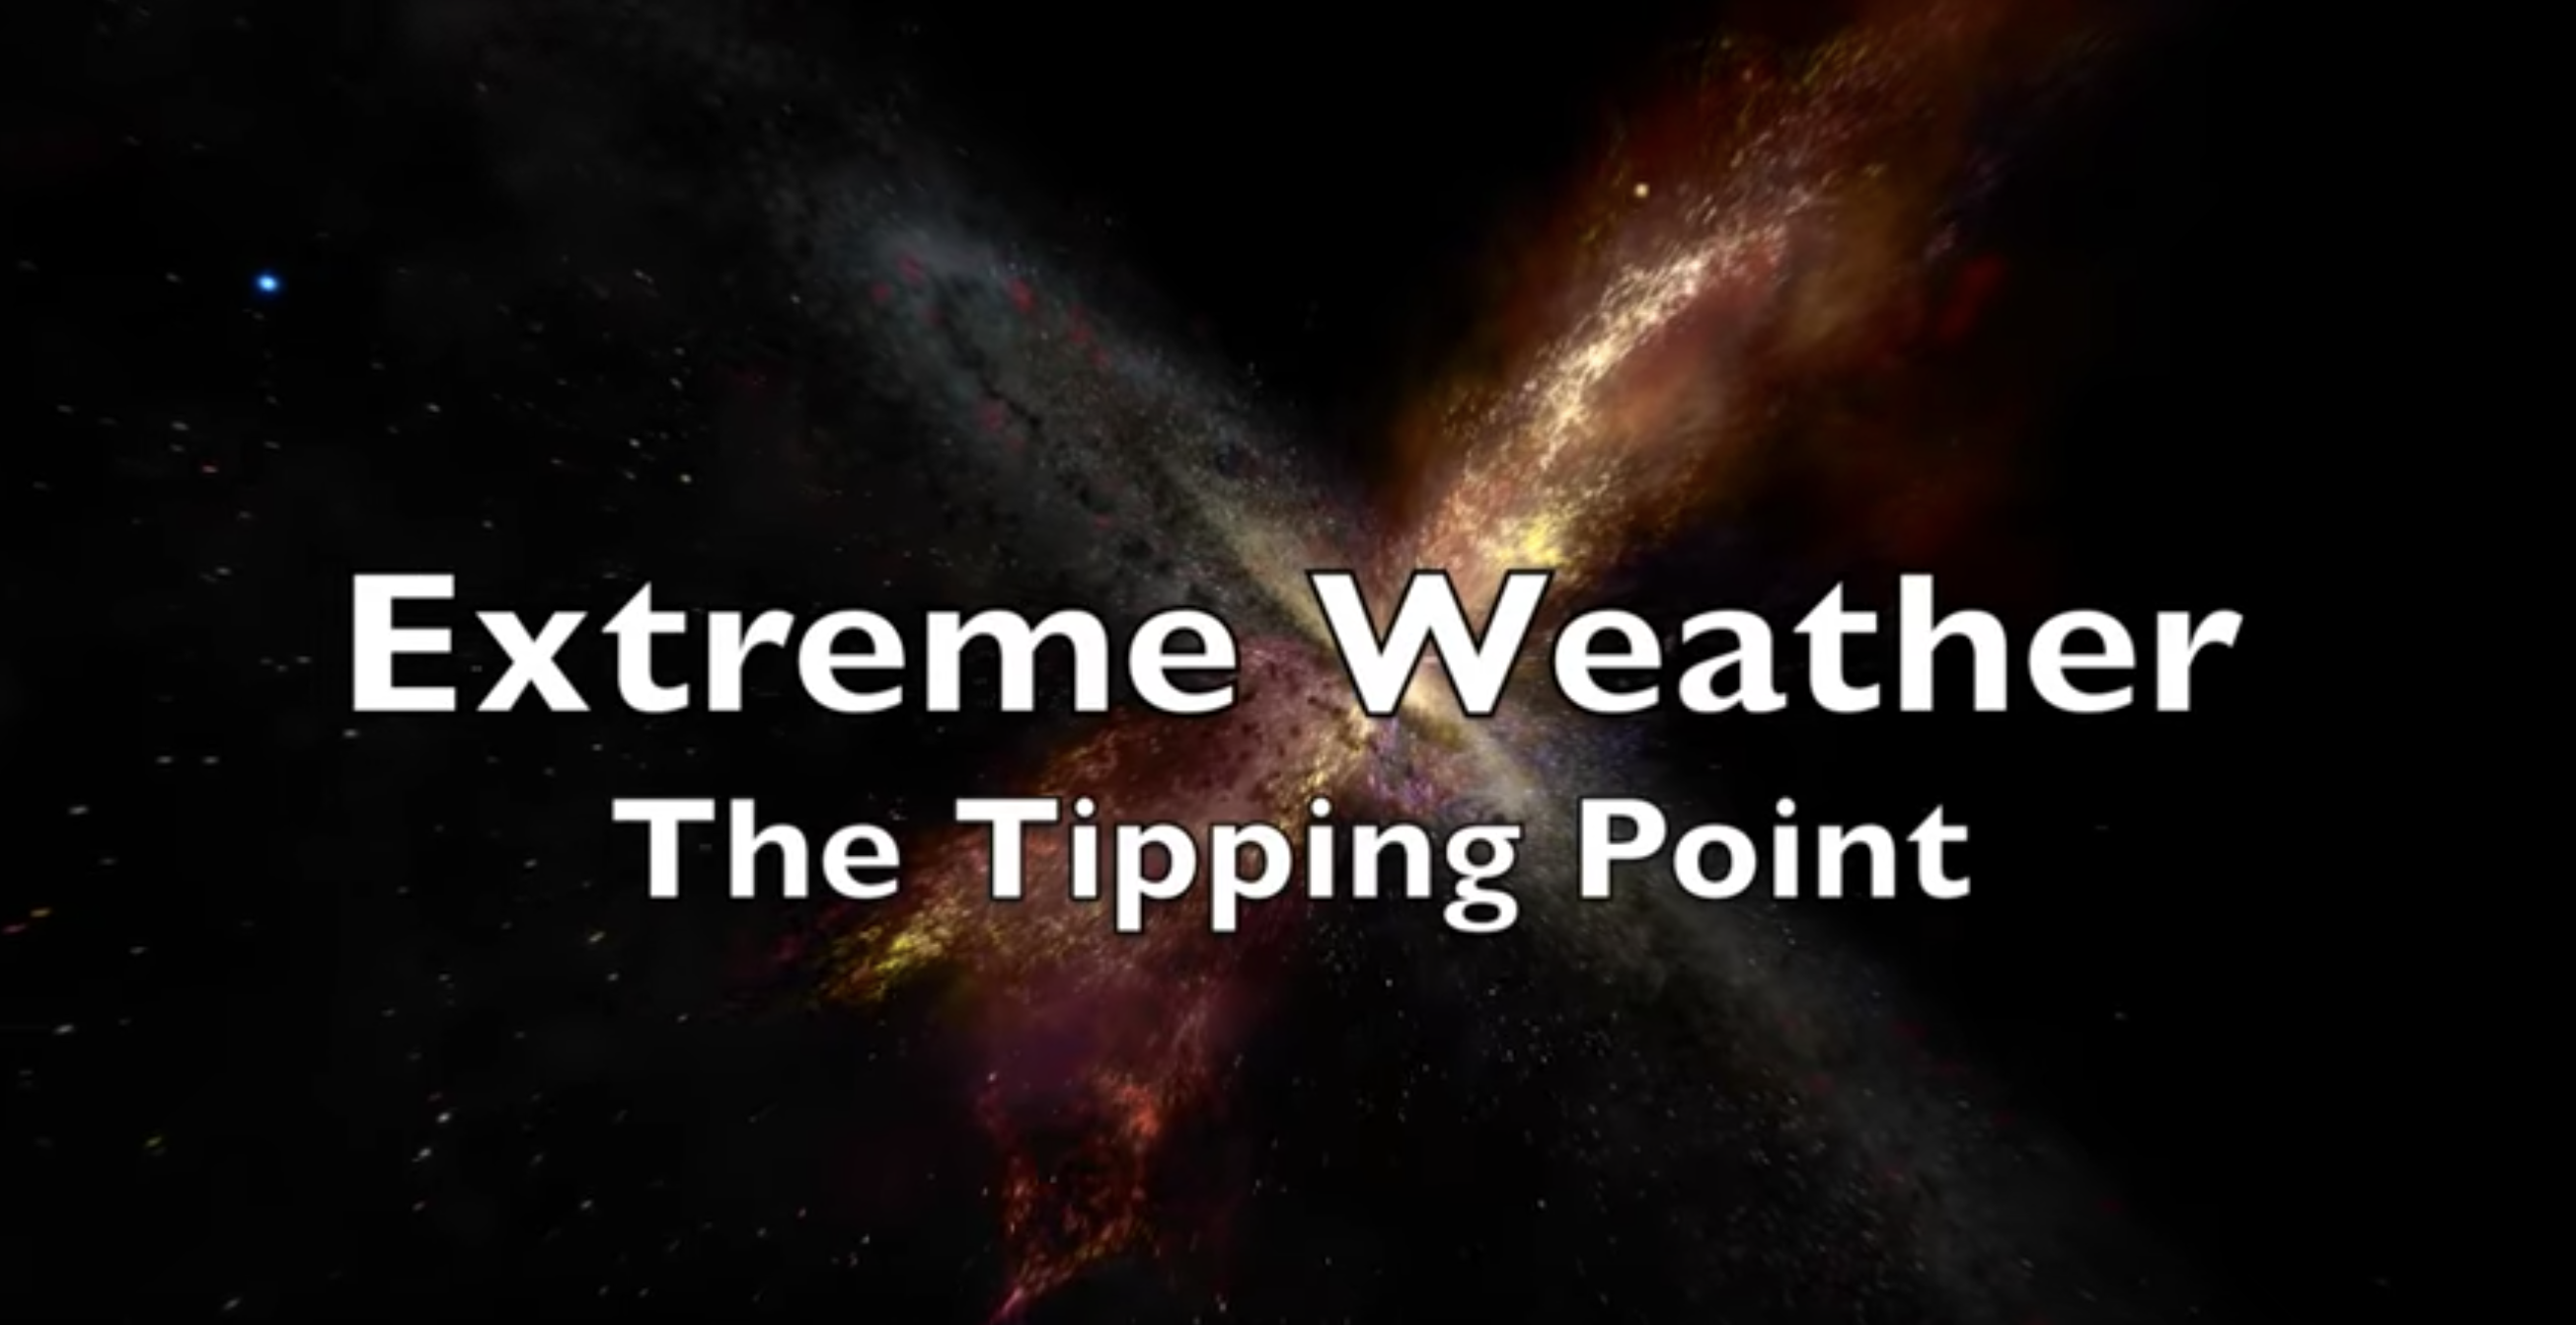 Extreme Weather The Tipping Point 1 1 2020